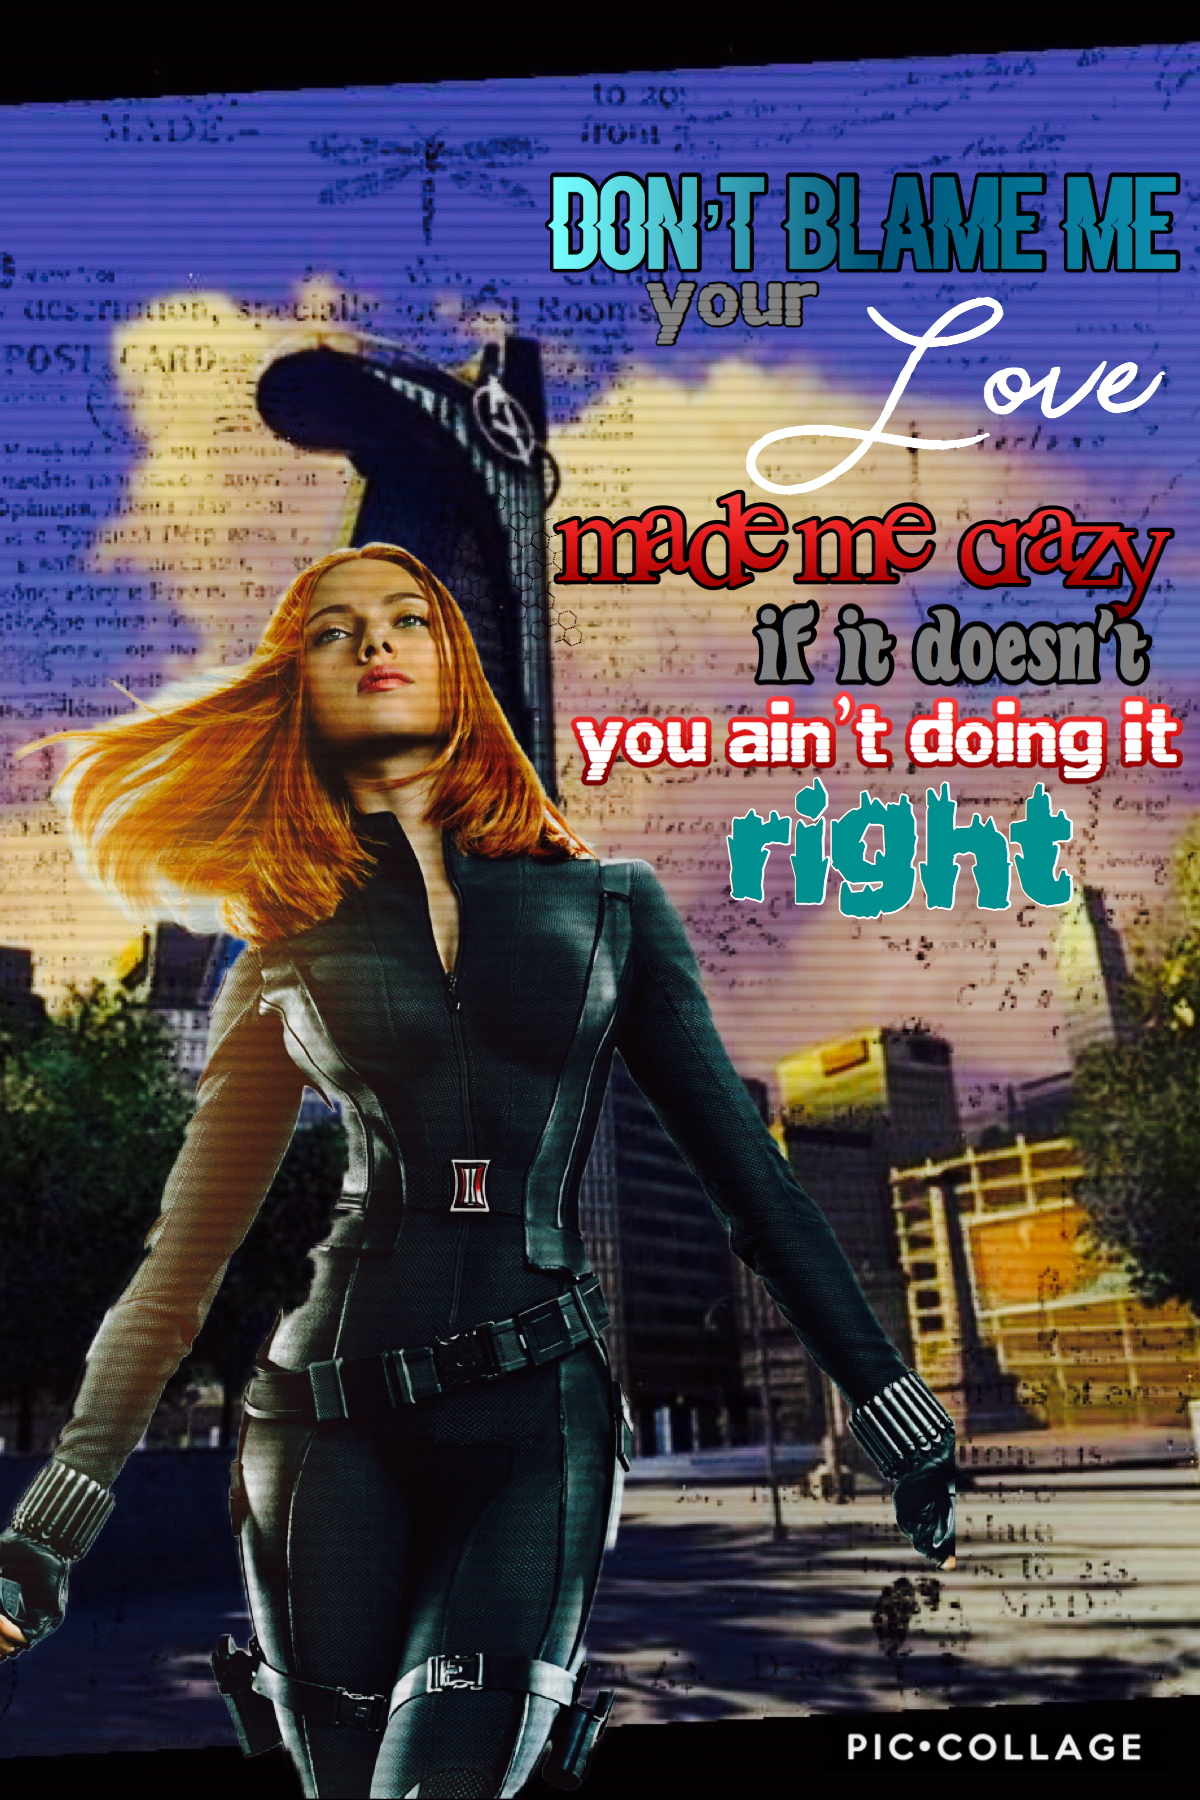 tap❤️ Black Widow Collage! Who else is hyped for the movie?? song-don't blame me by Taylor Swift